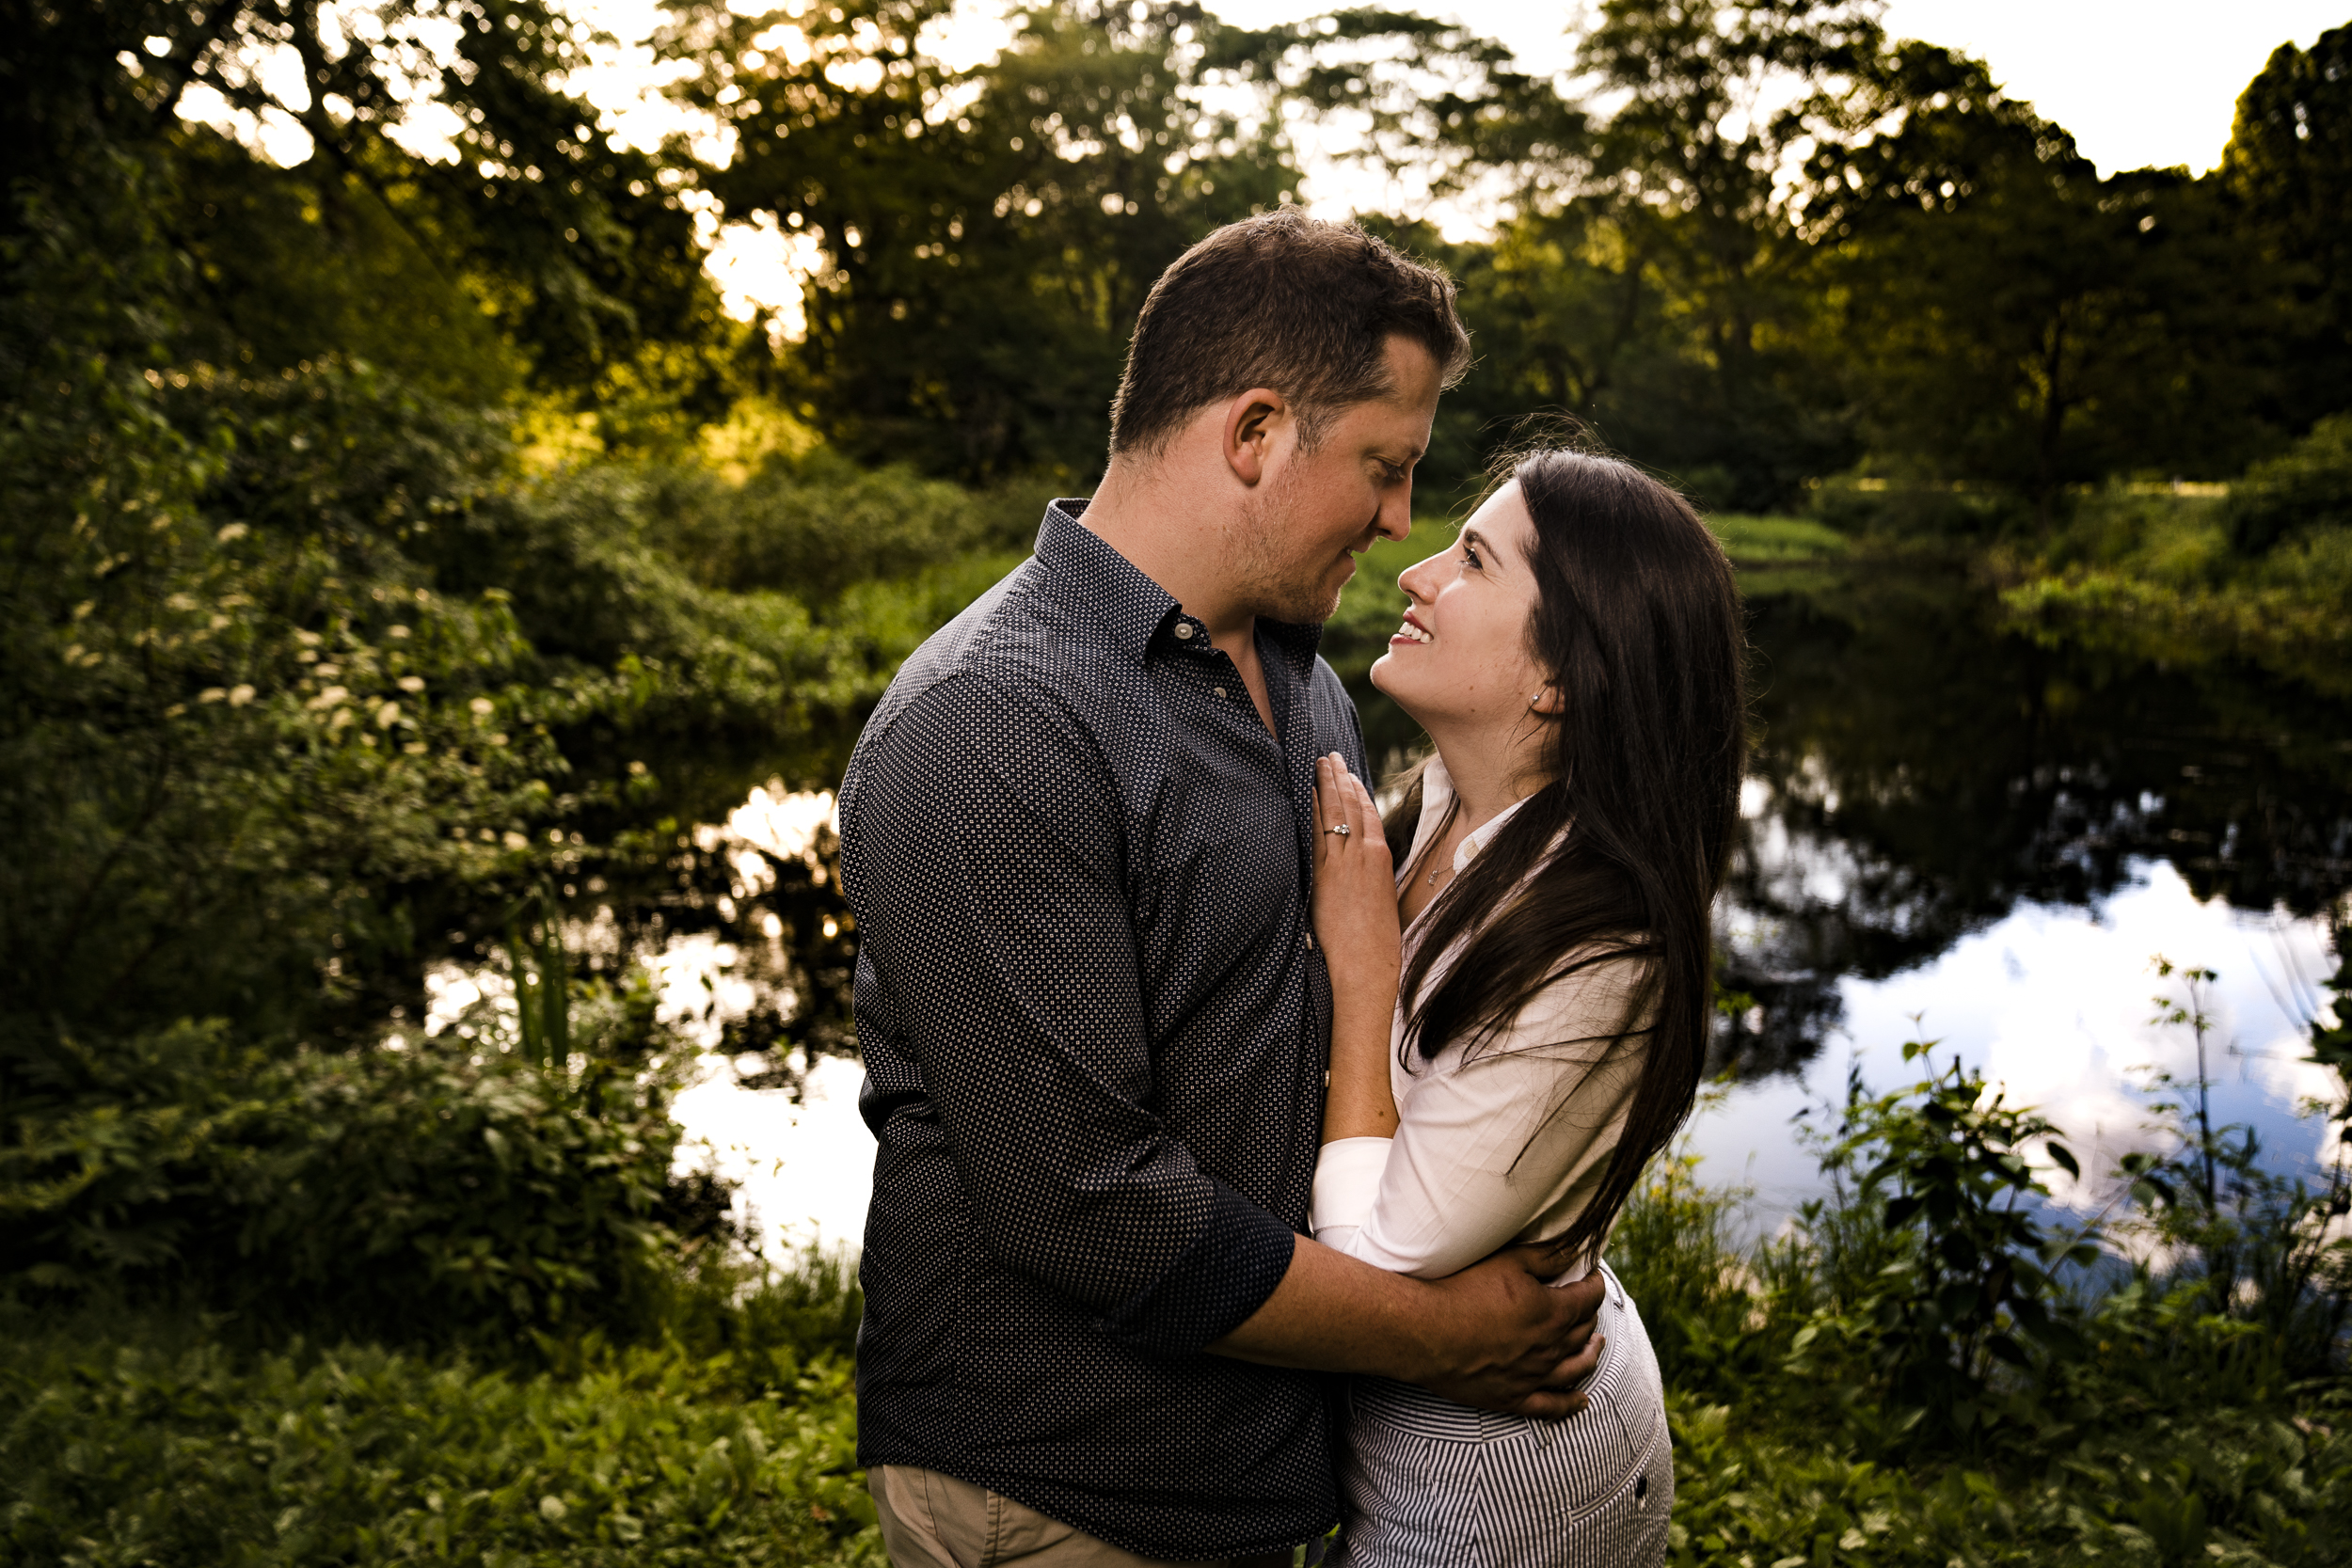 LaurenKevin_Engagement_BLOG_019.jpg